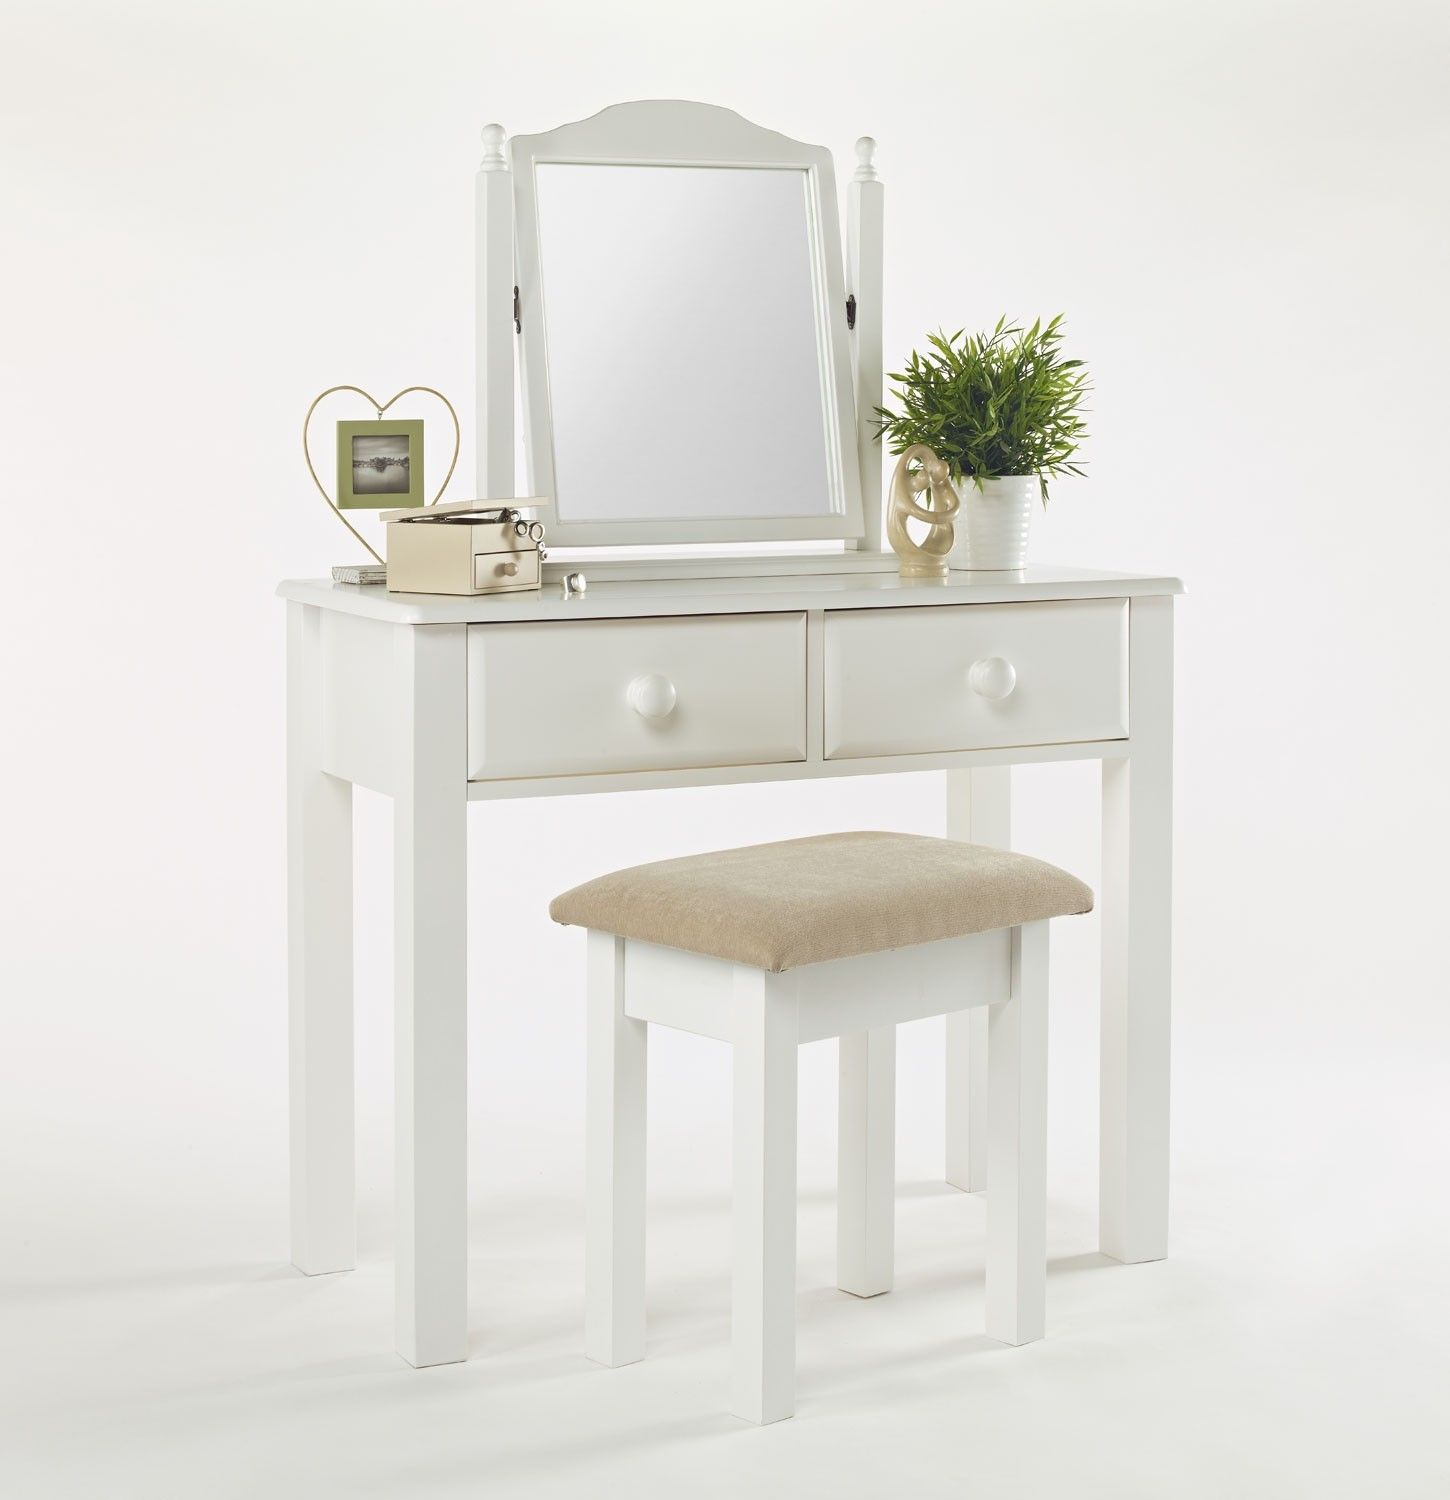 small vanity table without mirror. modern style furniture for the bedroom white wood  Small White Dressing dressing table